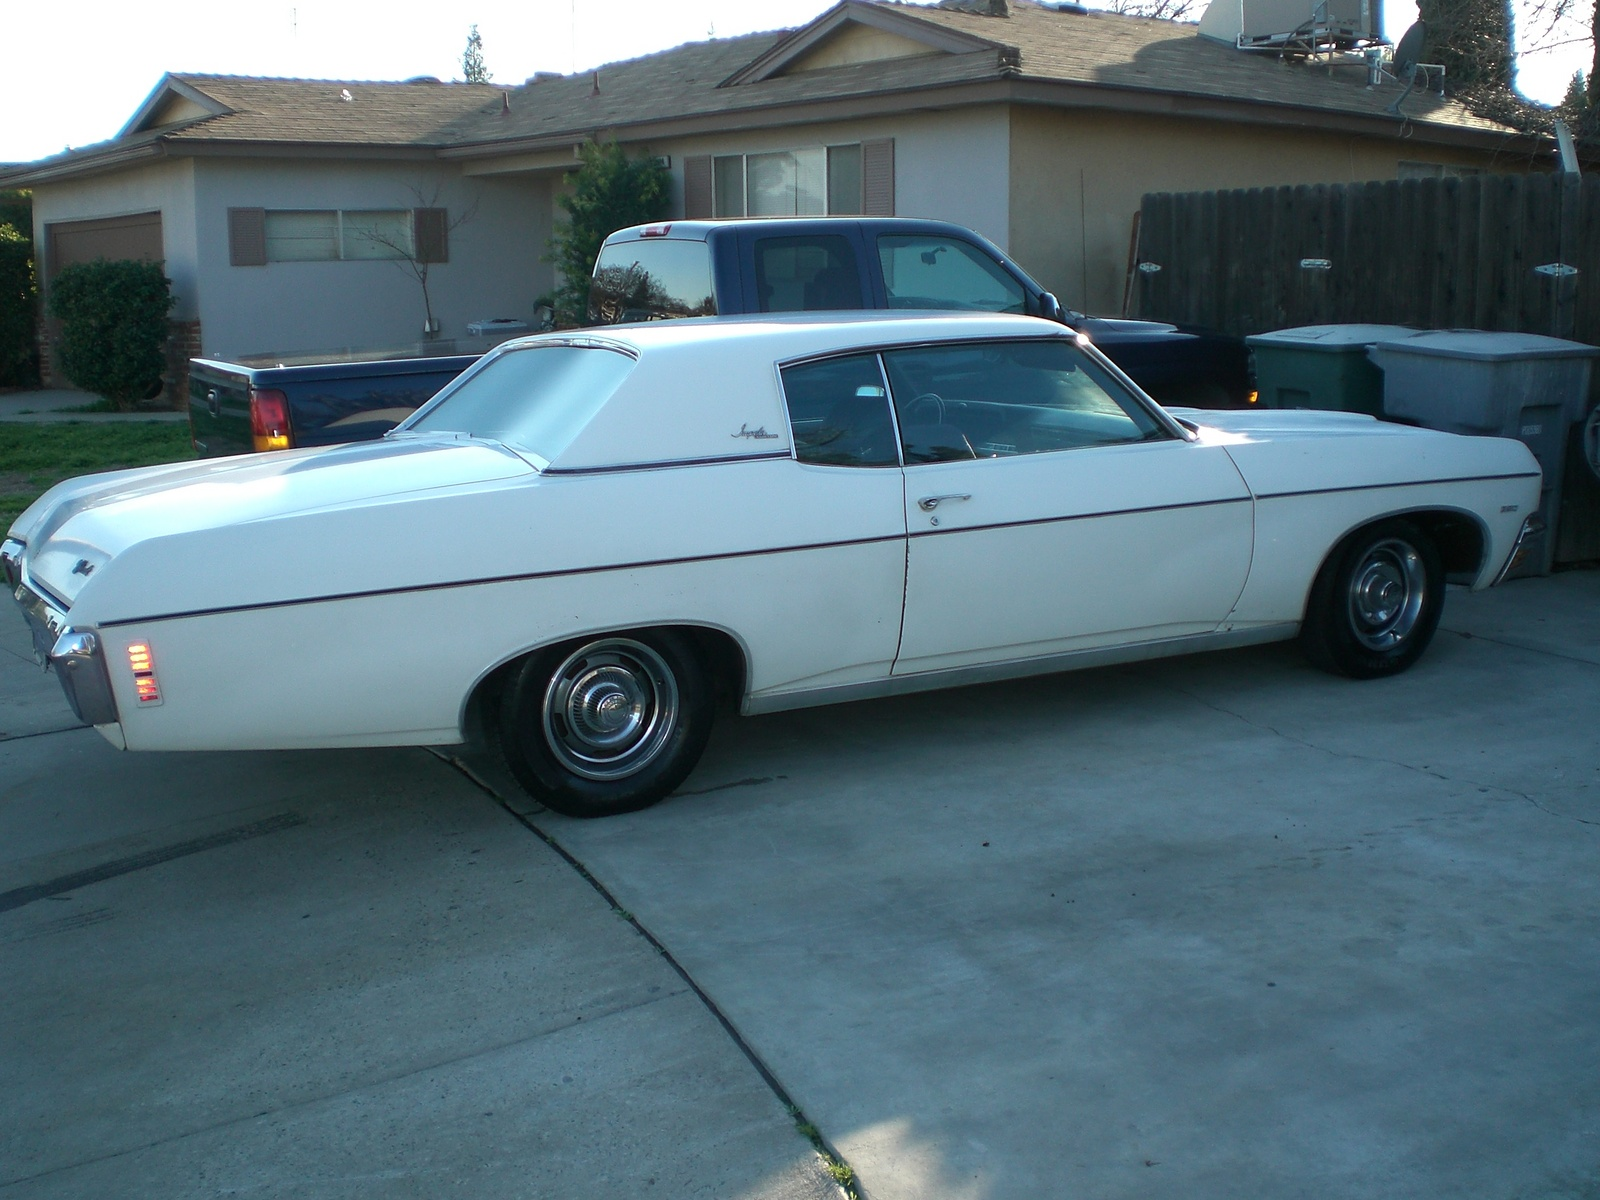 1996 Chevy Caprice For Sale 1970 Chevrolet Impala - Pictures - CarGurus